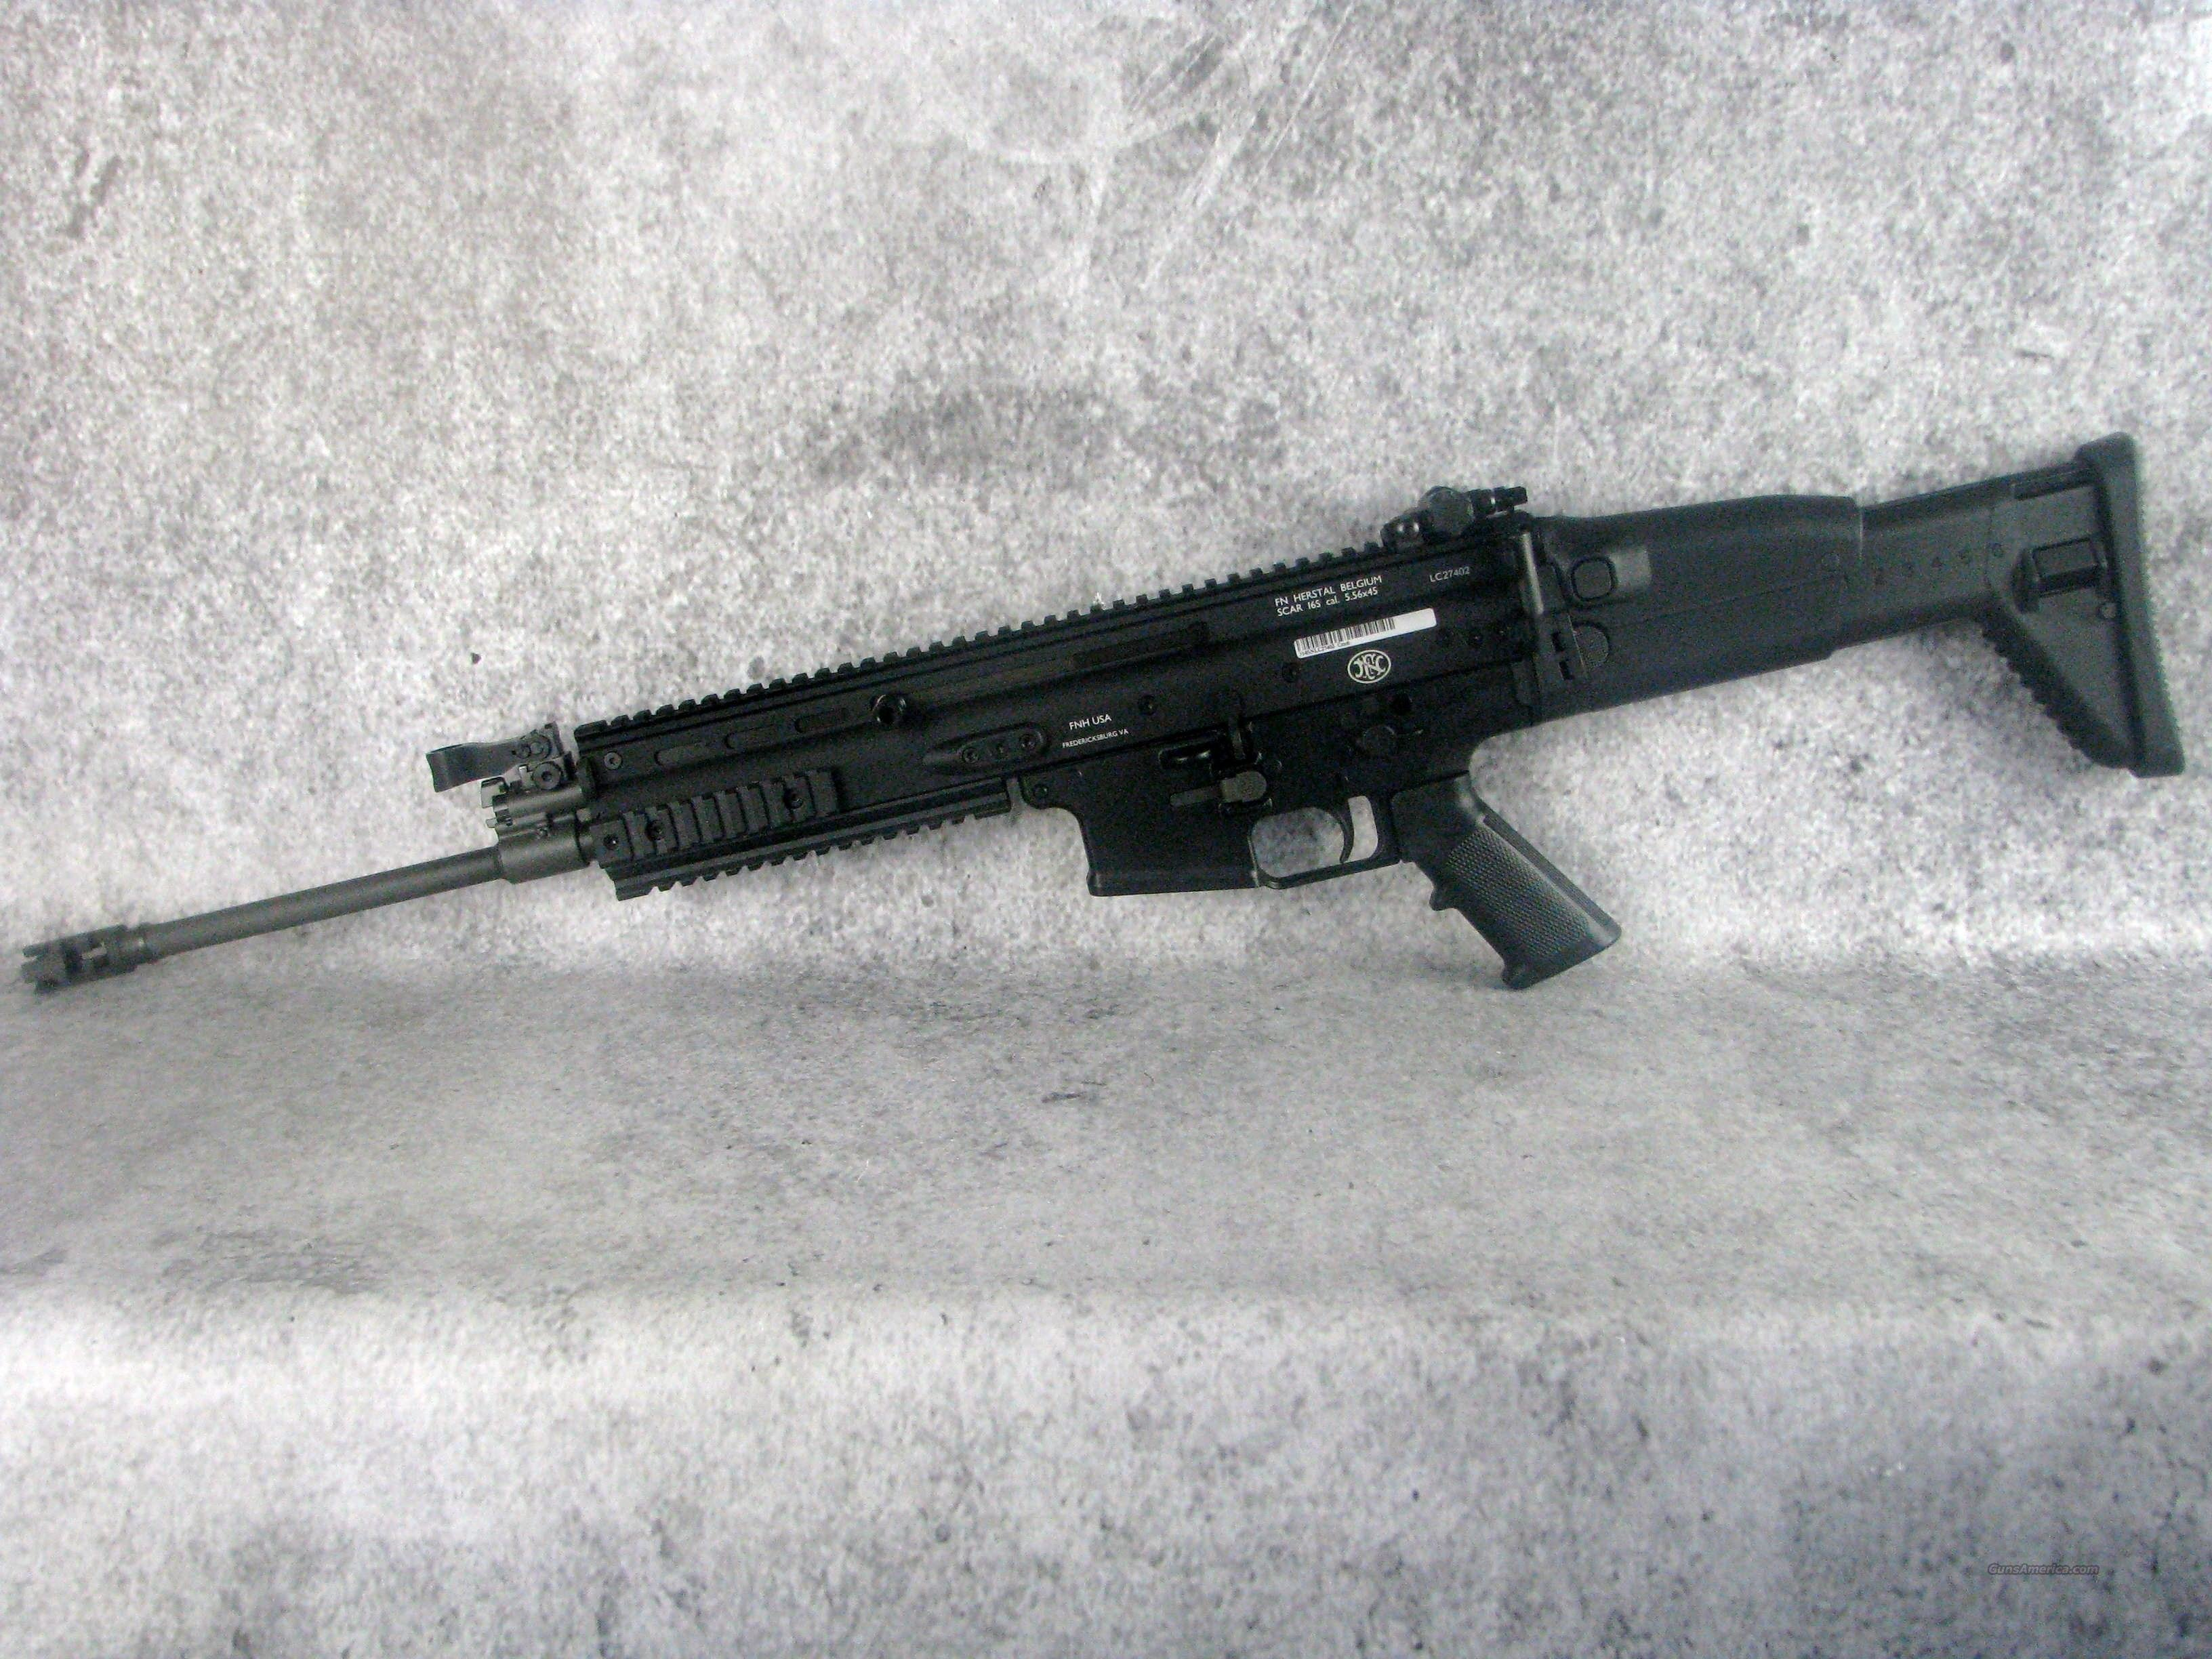 FNH SCAR 5.56 223 98521 /EASY PAY $143 Monthly  Guns > Rifles > FNH - Fabrique Nationale (FN) Rifles > Semi-auto > Other